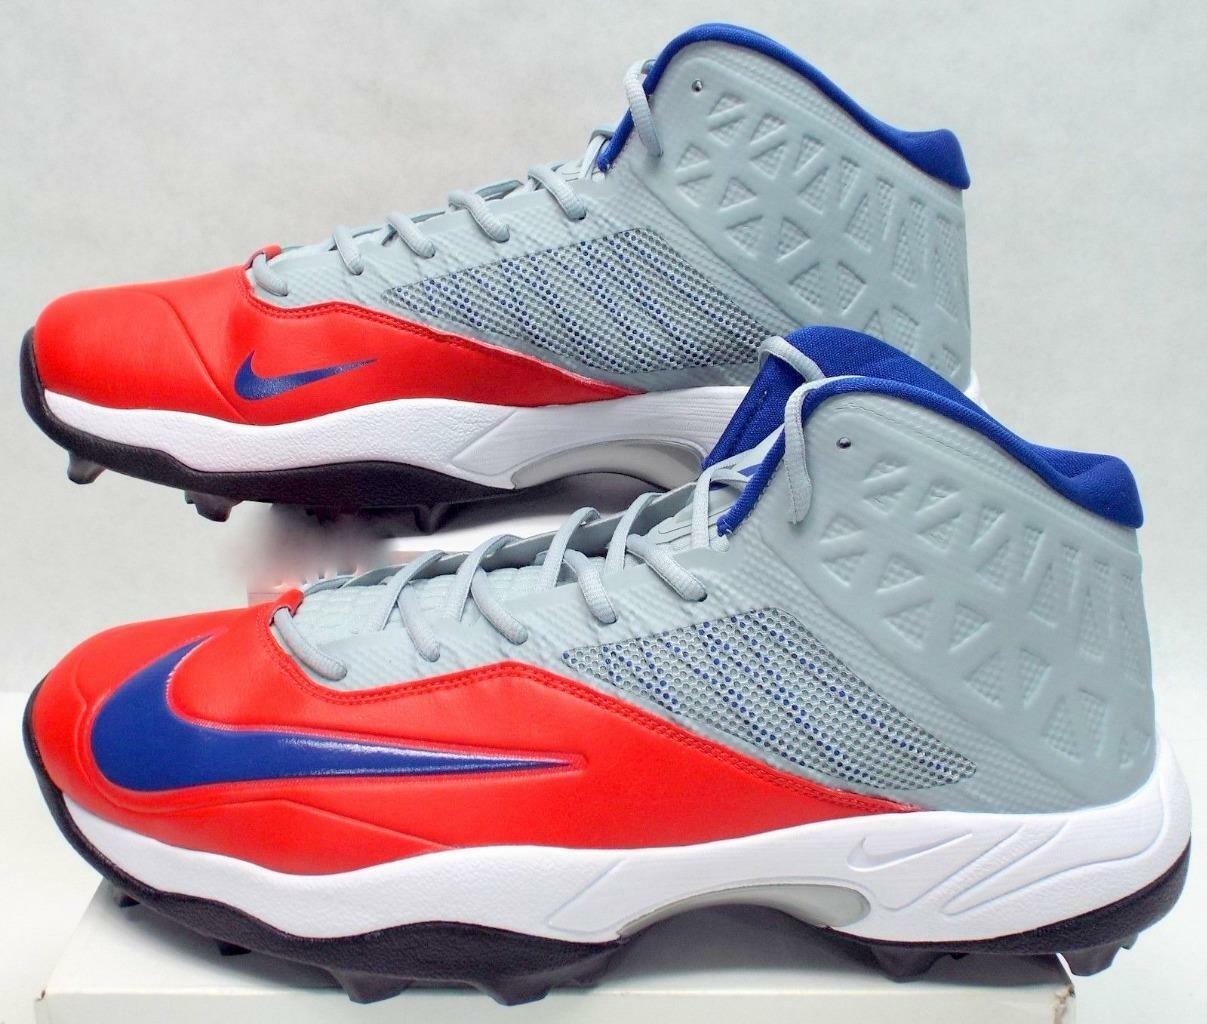 Comfortable and good-looking NIKE Zoom Code Elite 3/4 Shark Cleats Men's Shoes Price reduction